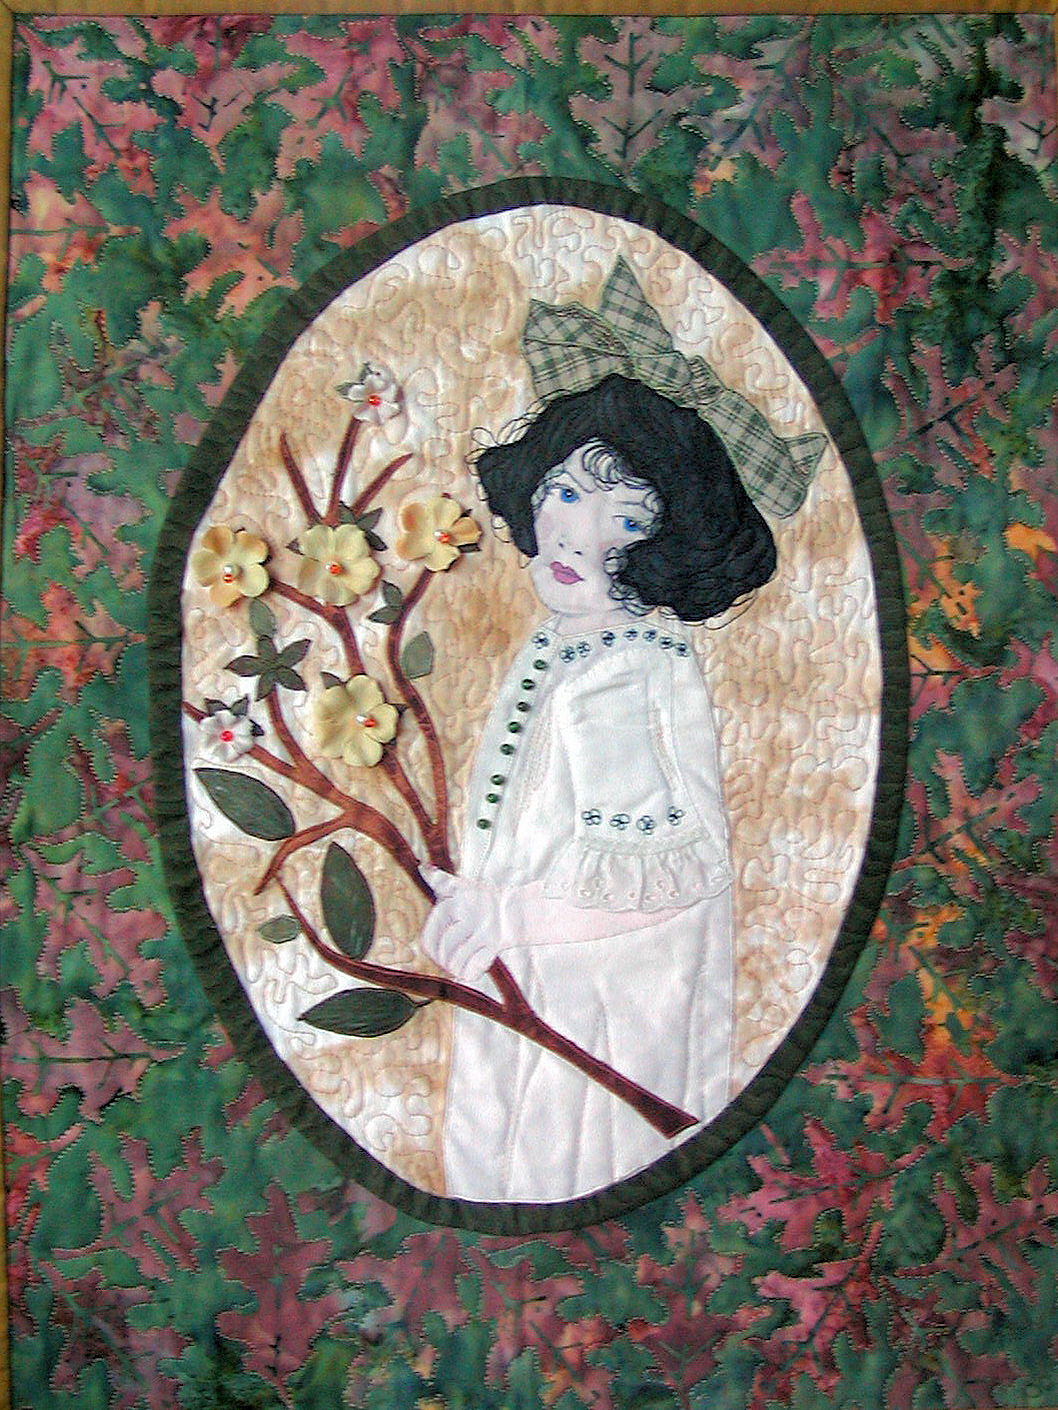 fiber art image of young Victorian Girl holding a branch embellished with three dimensional flowers, with a dress decorated with beads and antique lace